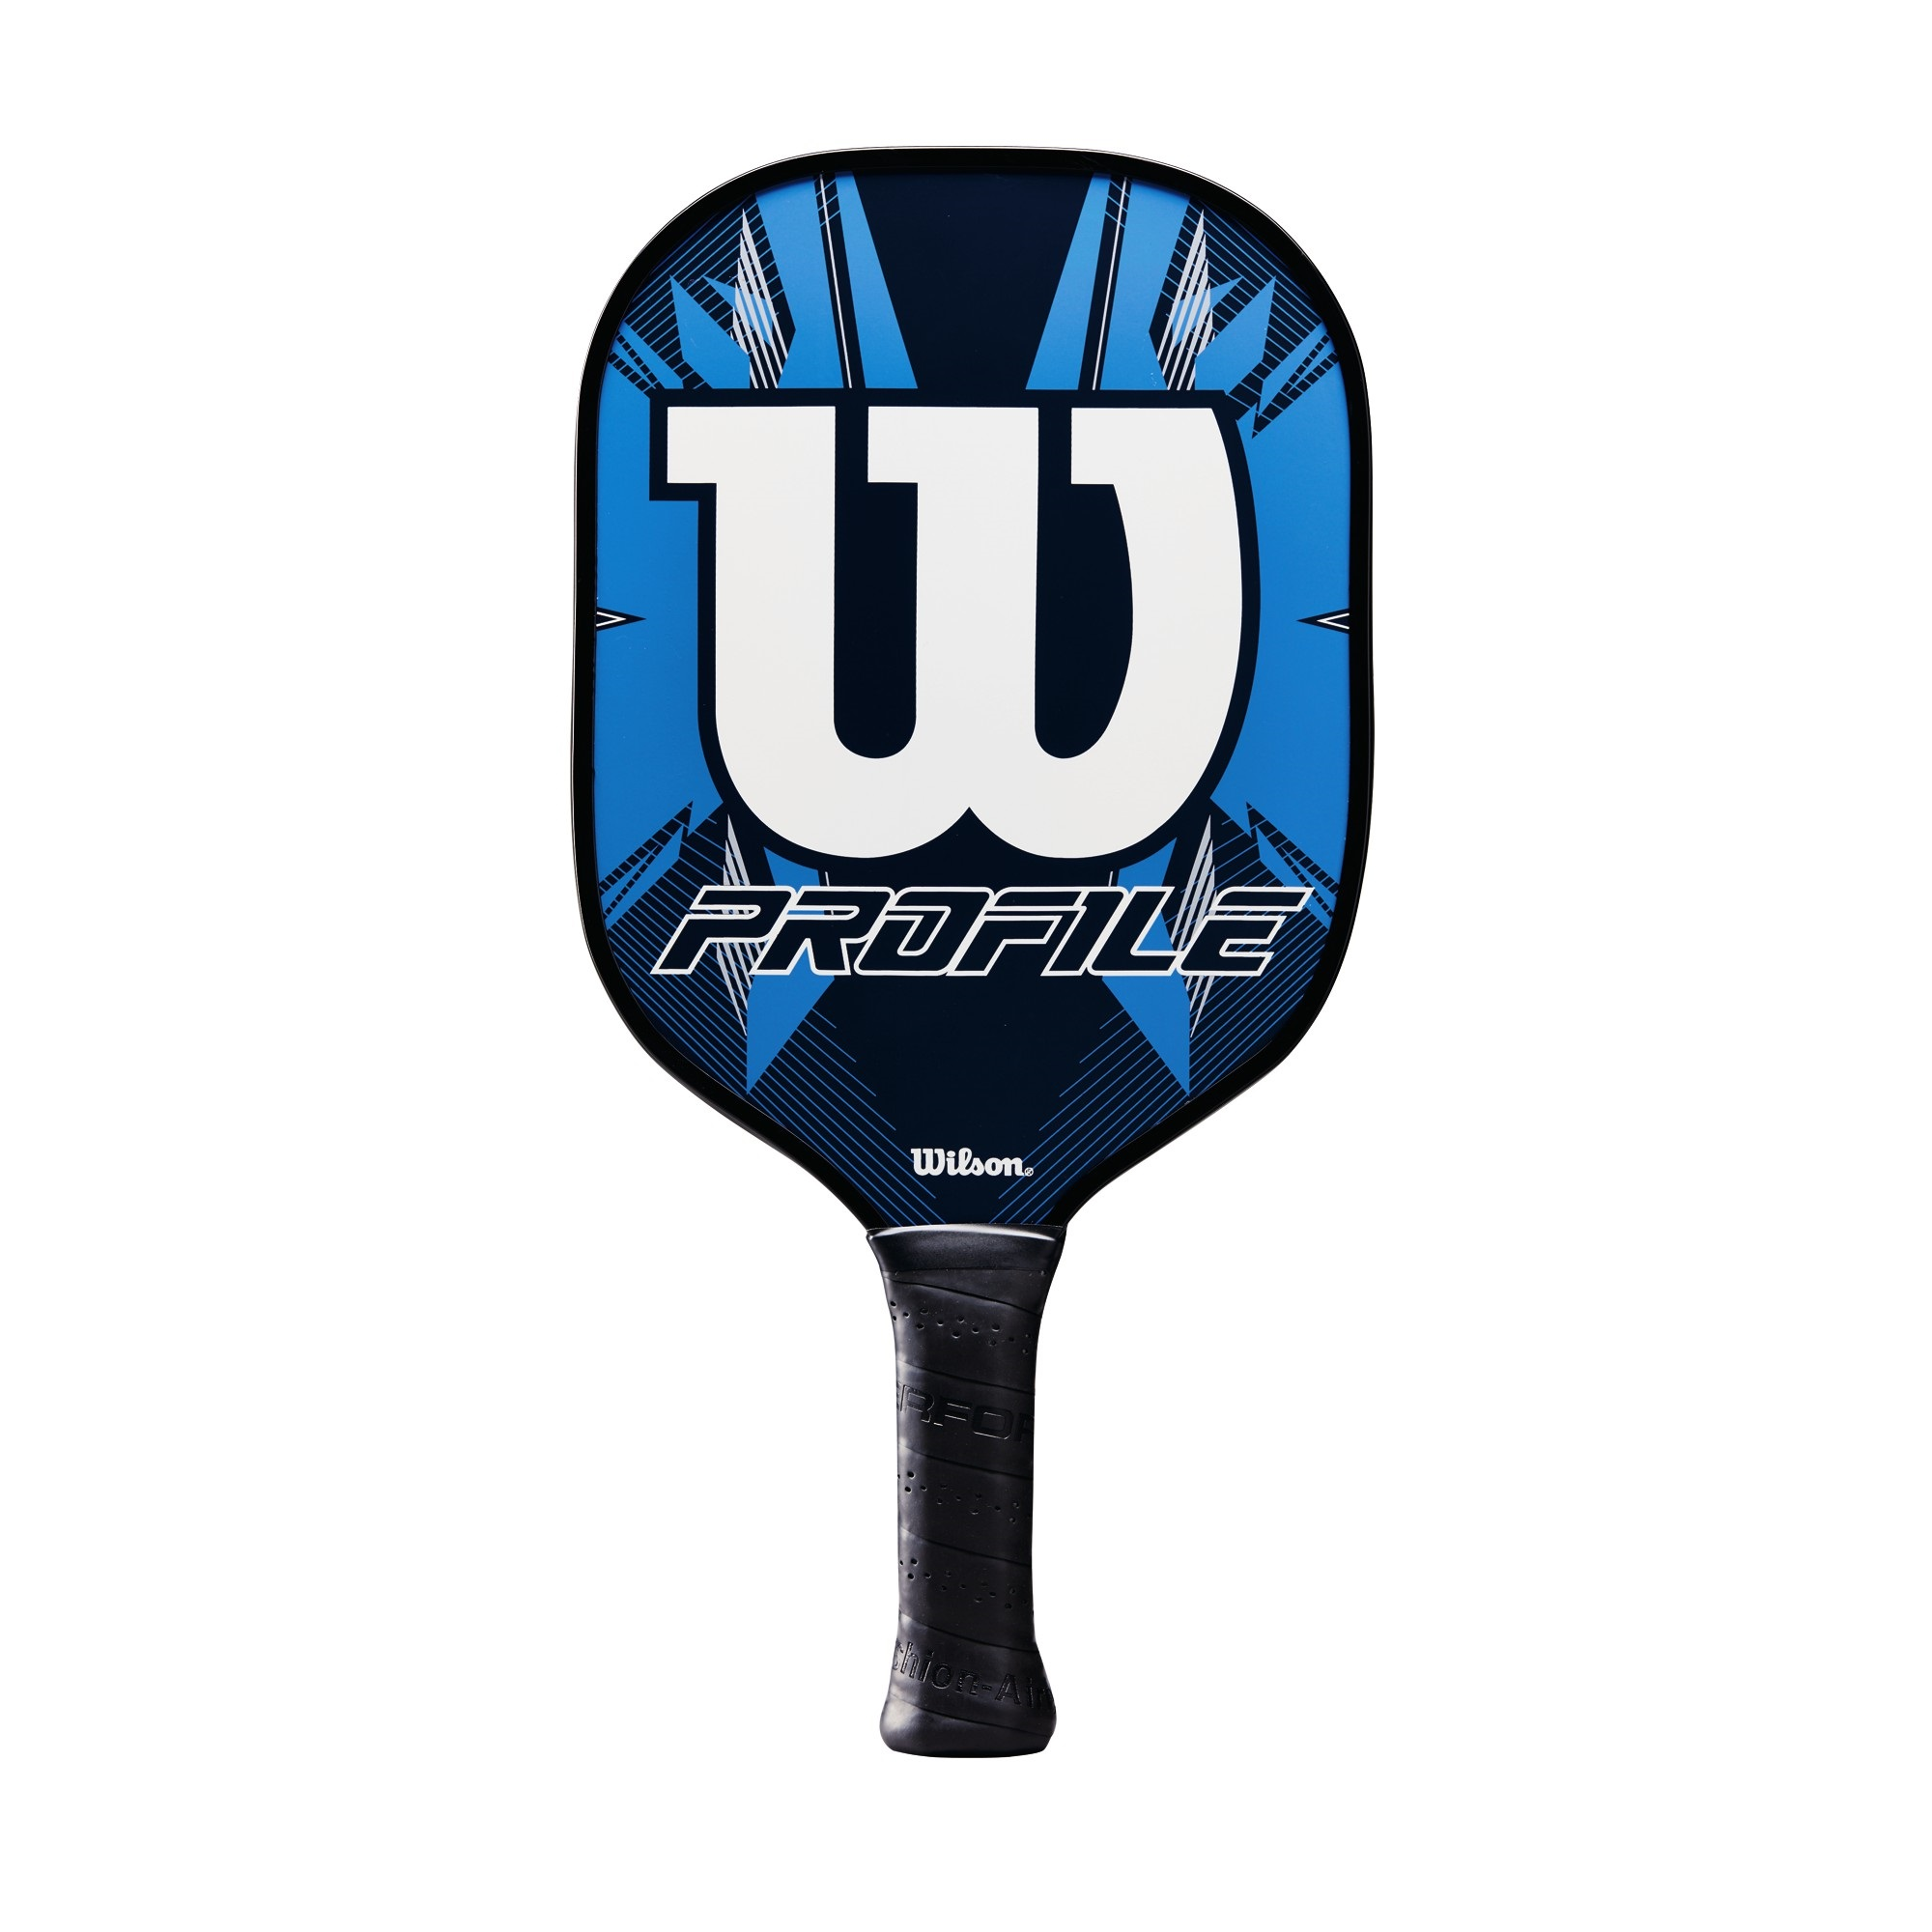 Wilson Profile Pickleball Paddle, Blue